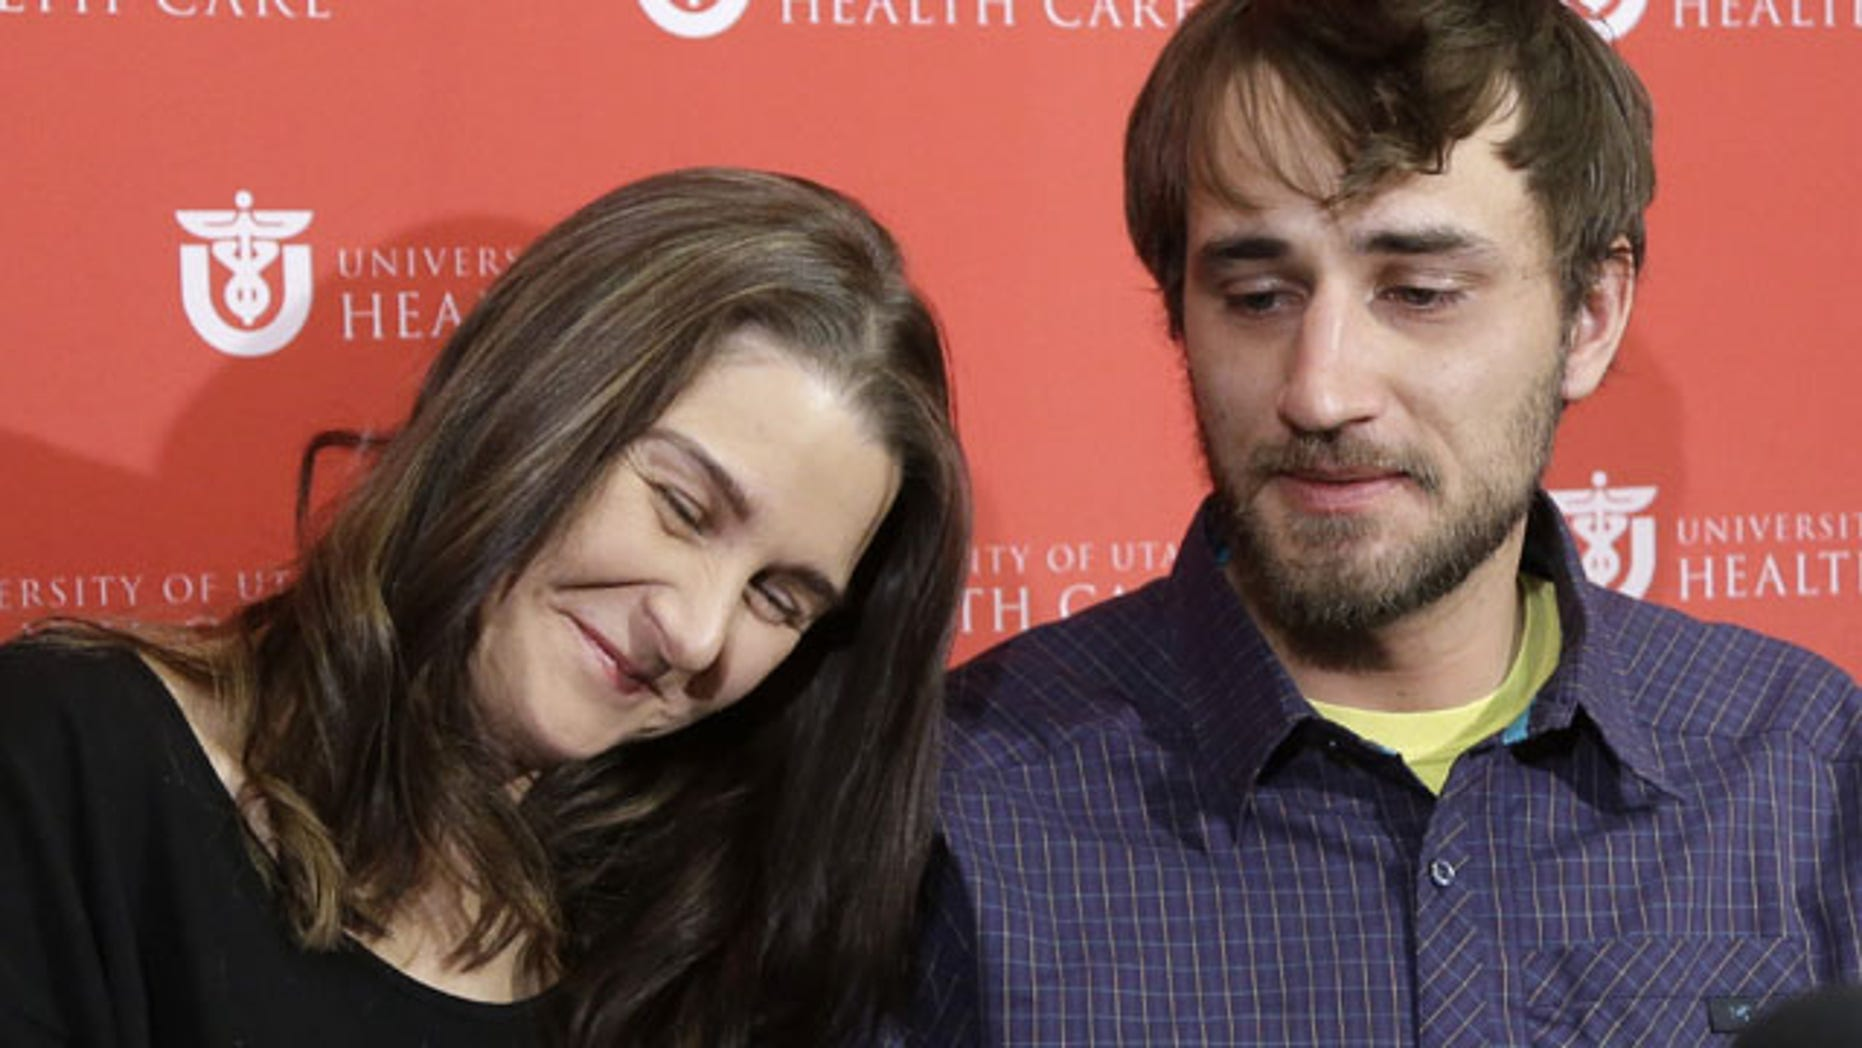 Jan. 16, 2013: Avalanche survivor, Elisabeth Malloy and skiing partner and initial rescuer Adam Morrey discuss their avalanche ordeal during a news conference at the University of Utah Health Care's Burn Center.